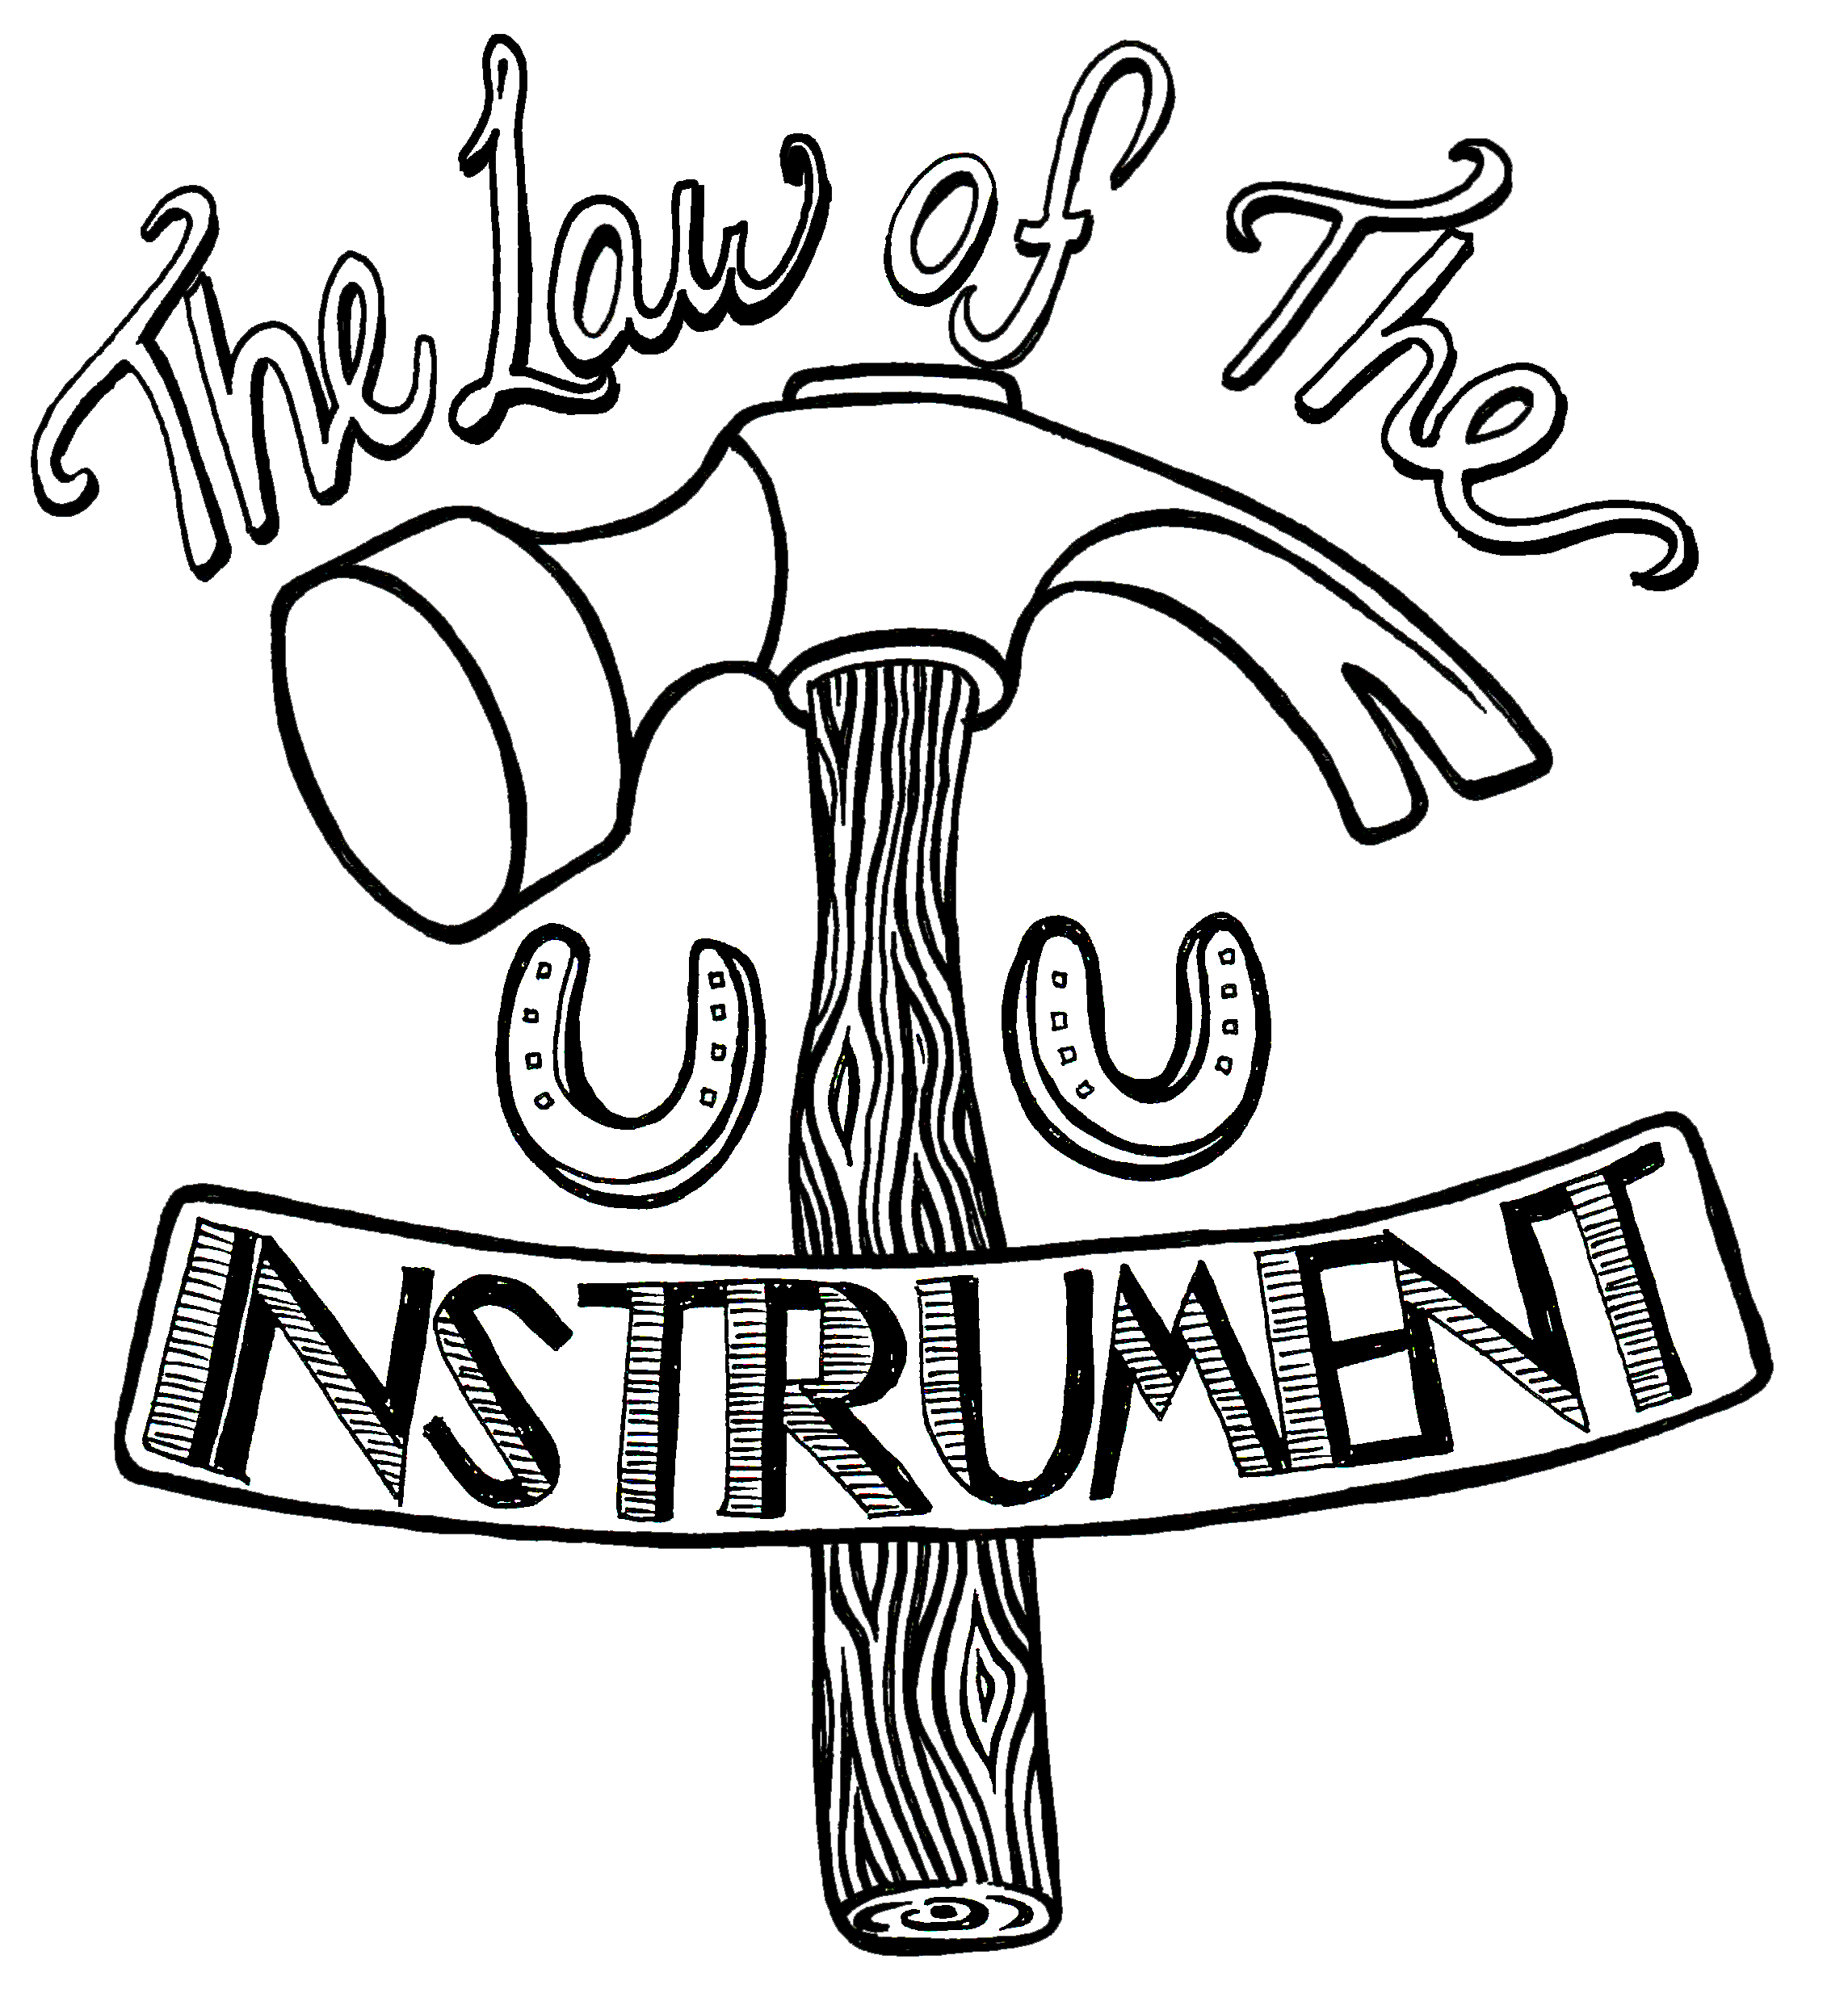 The Law of the Instrument (2013)